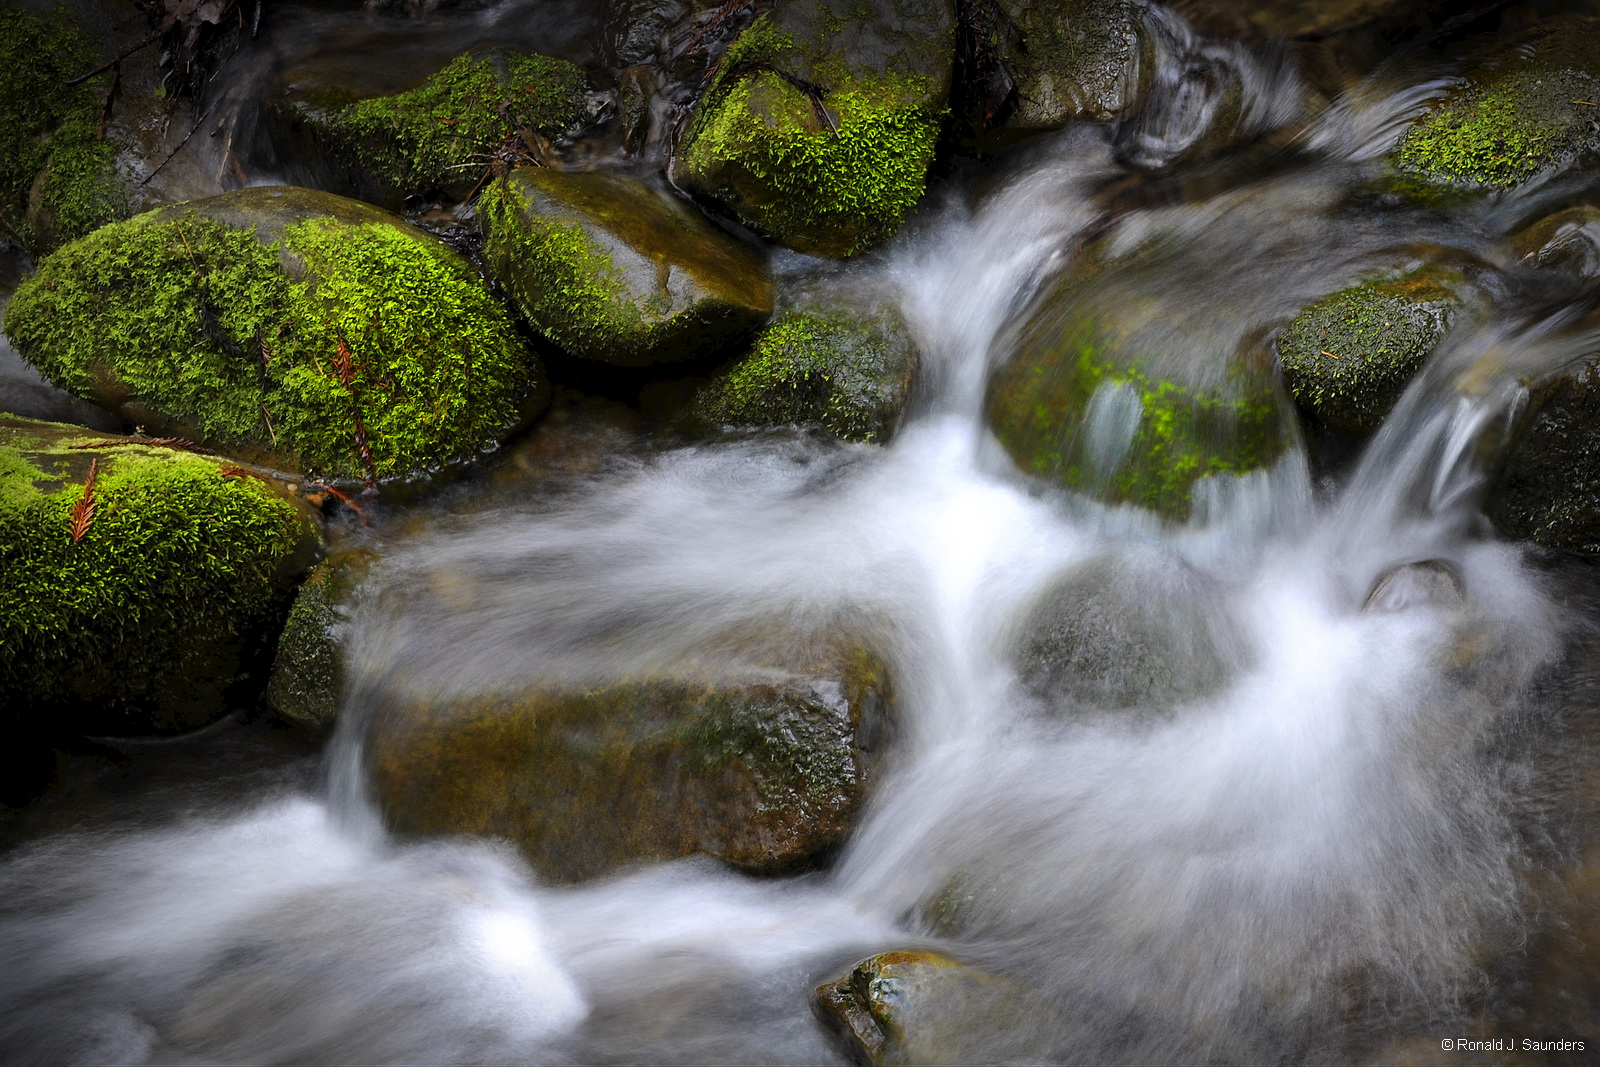 redwoods, stream, moss, california, stream, falls, photo